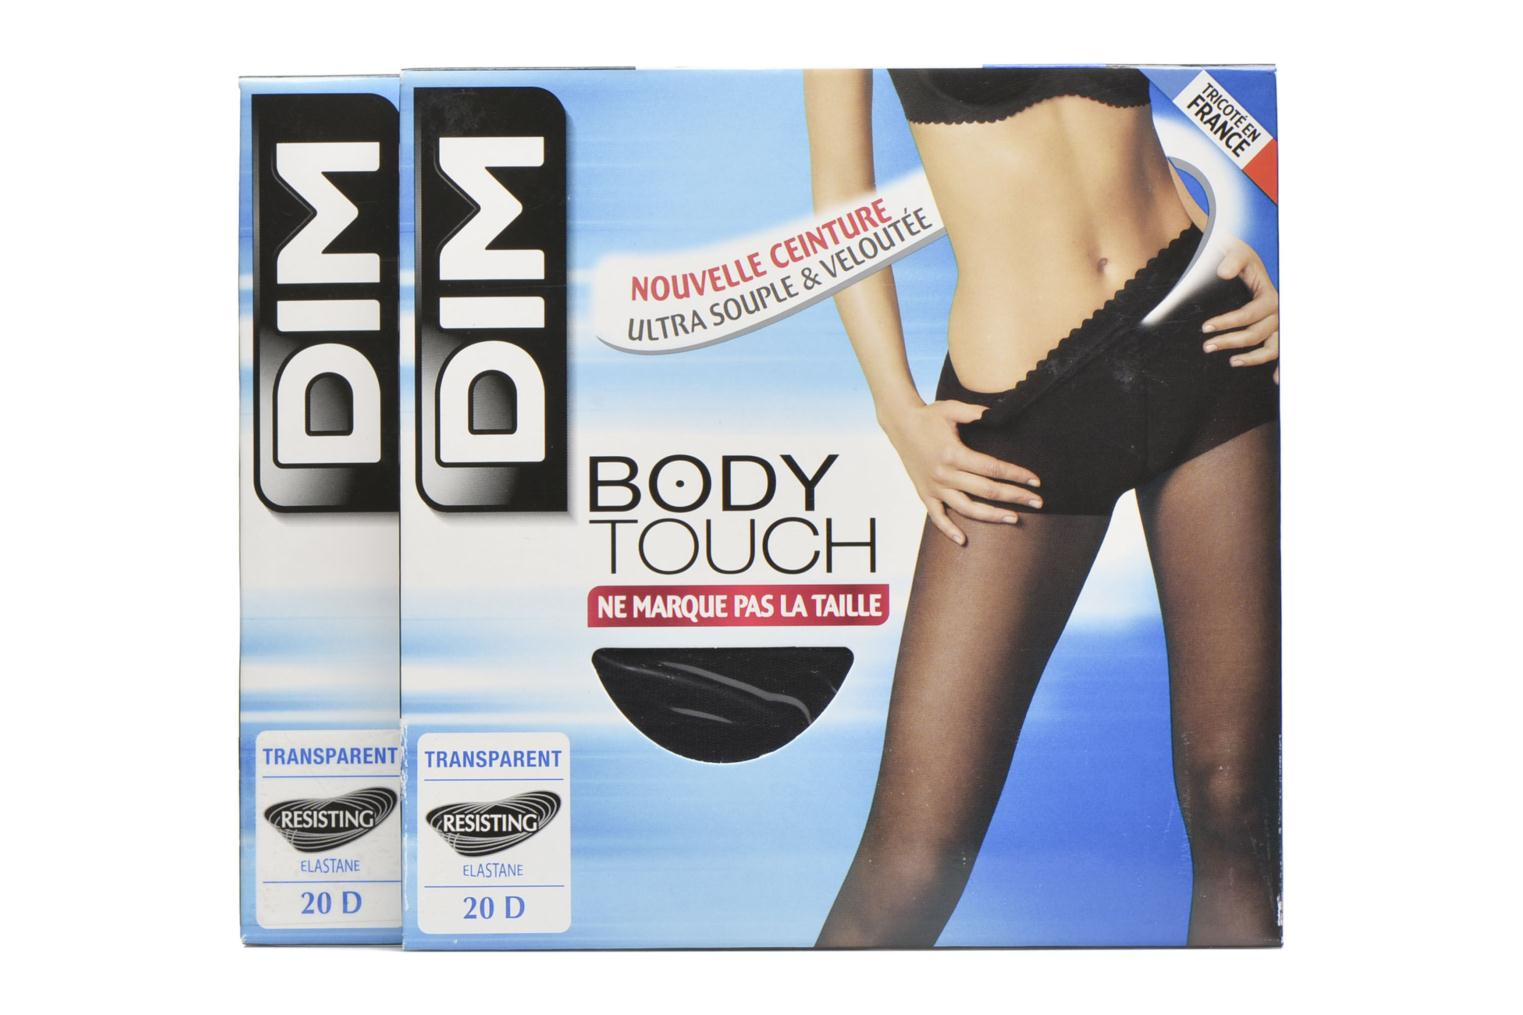 Collant BODY TOUCH VOILE Pack de 2 0HZ NOIR